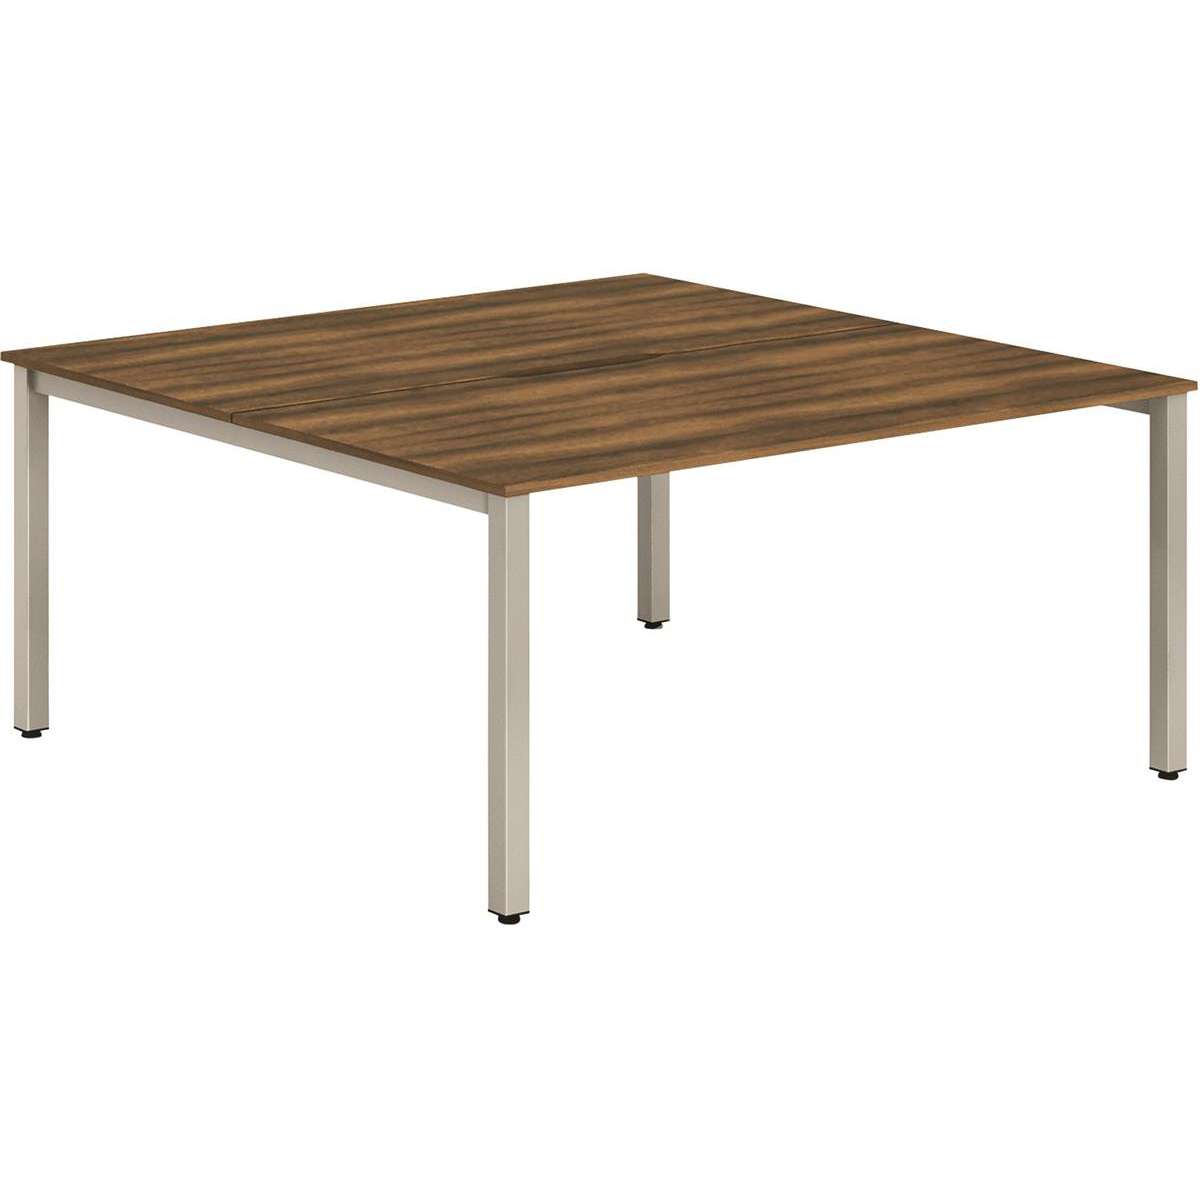 Trexus Bench Desk 2 Person Back to Back Configuration Silver Leg 1200x1600mm Walnut Ref BE179